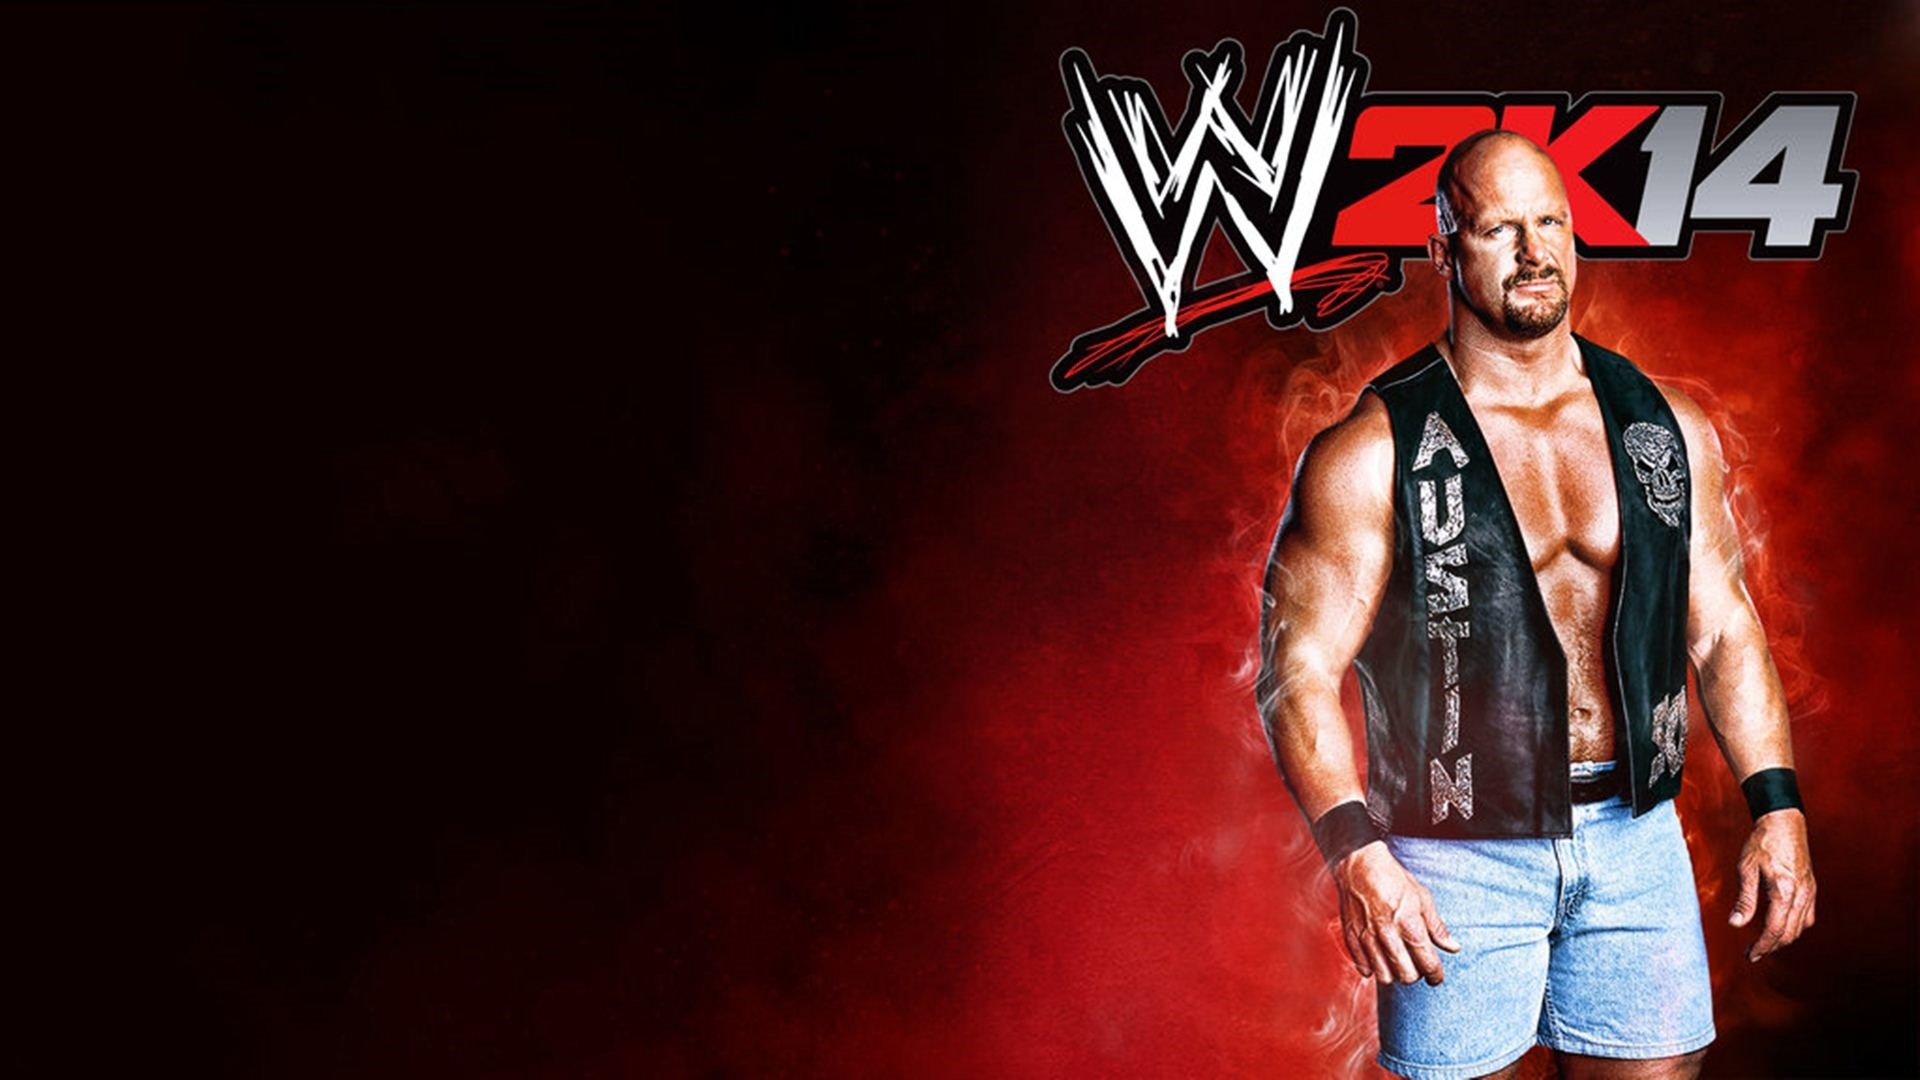 stone cold wwe hd background wallpaper